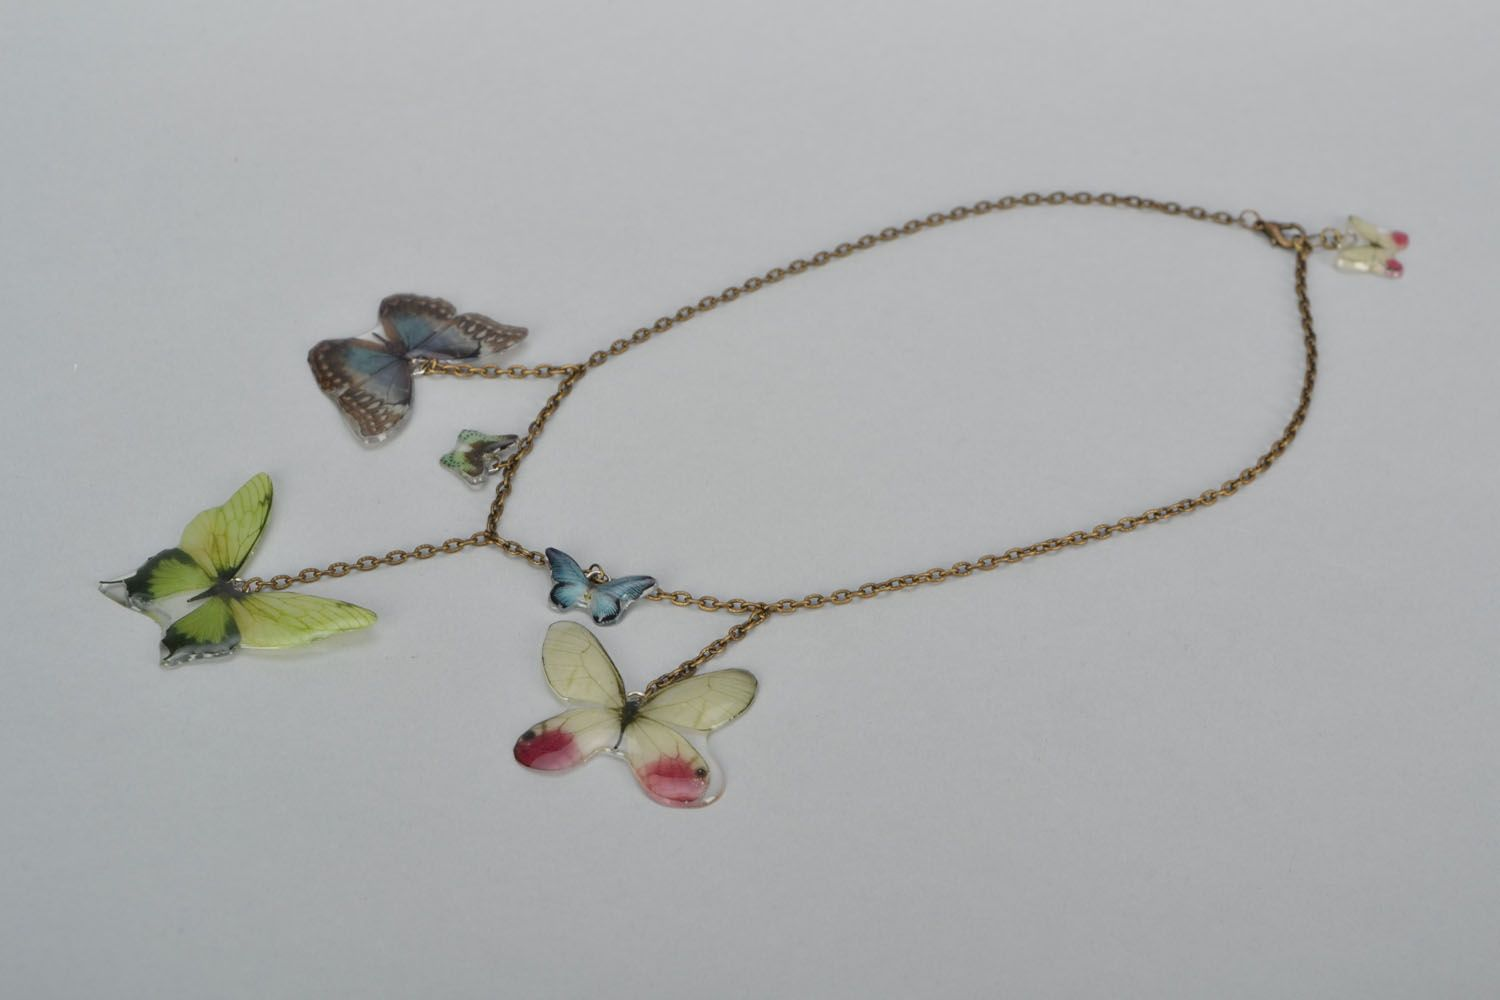 Real butterfly necklace photo 1